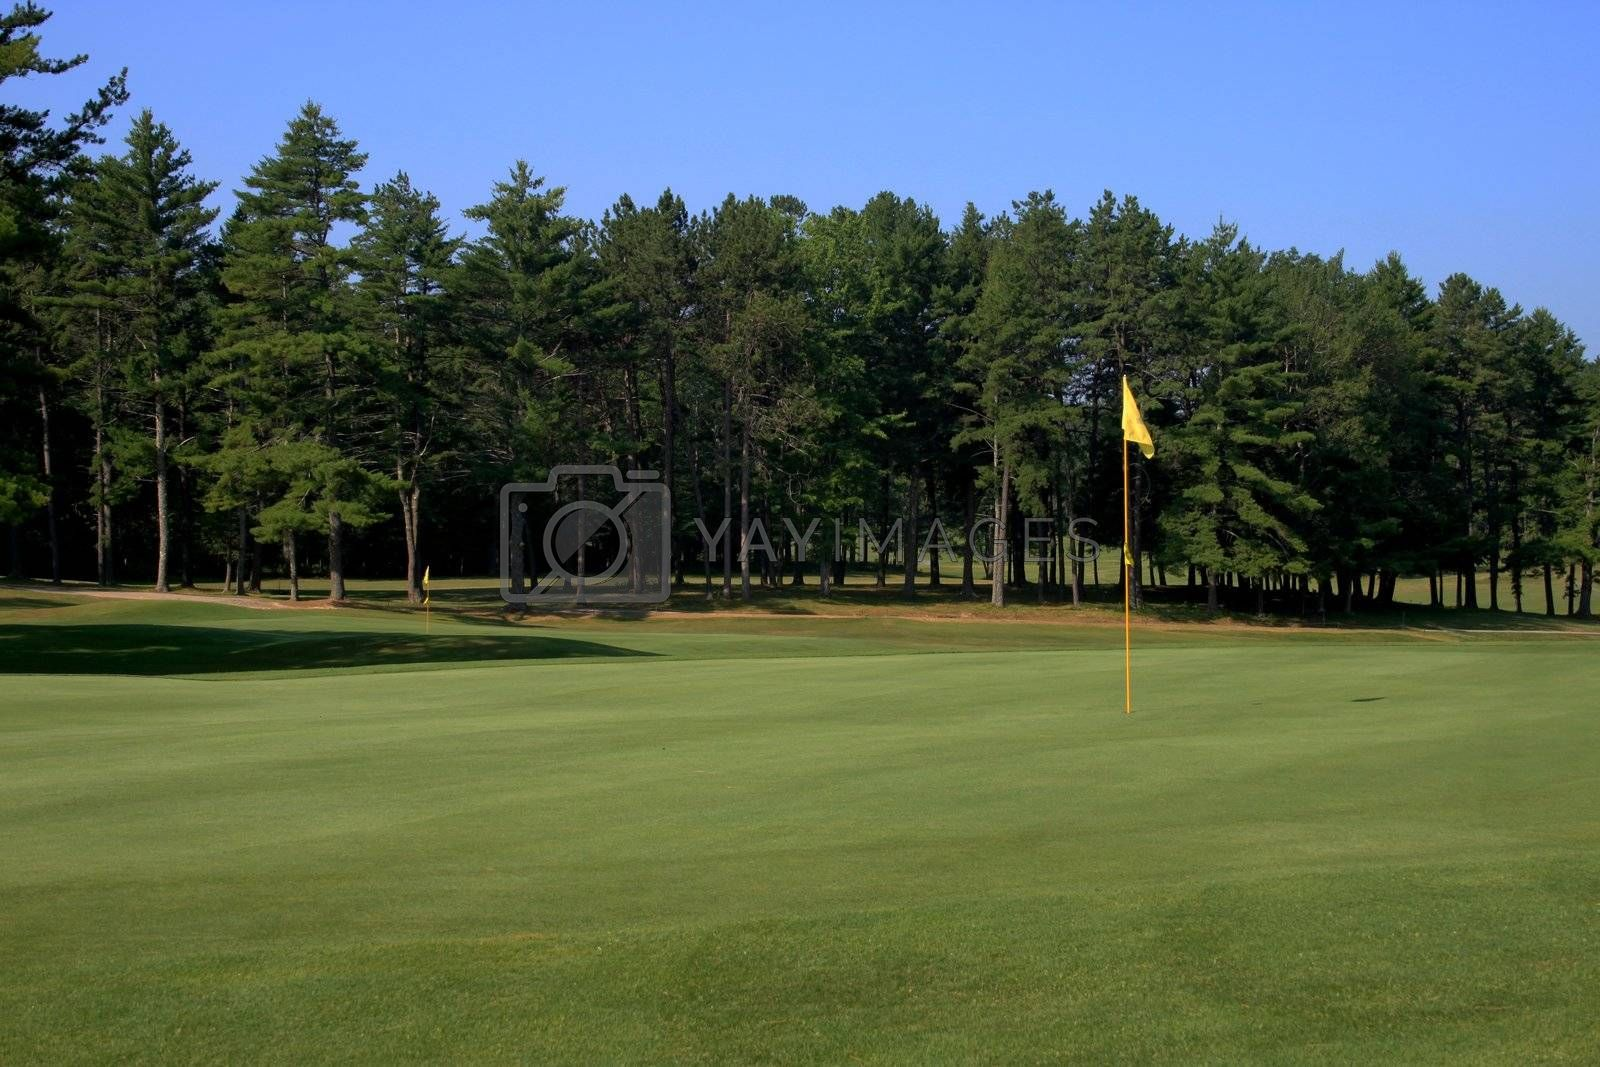 View of a golf green with the flag on the right side